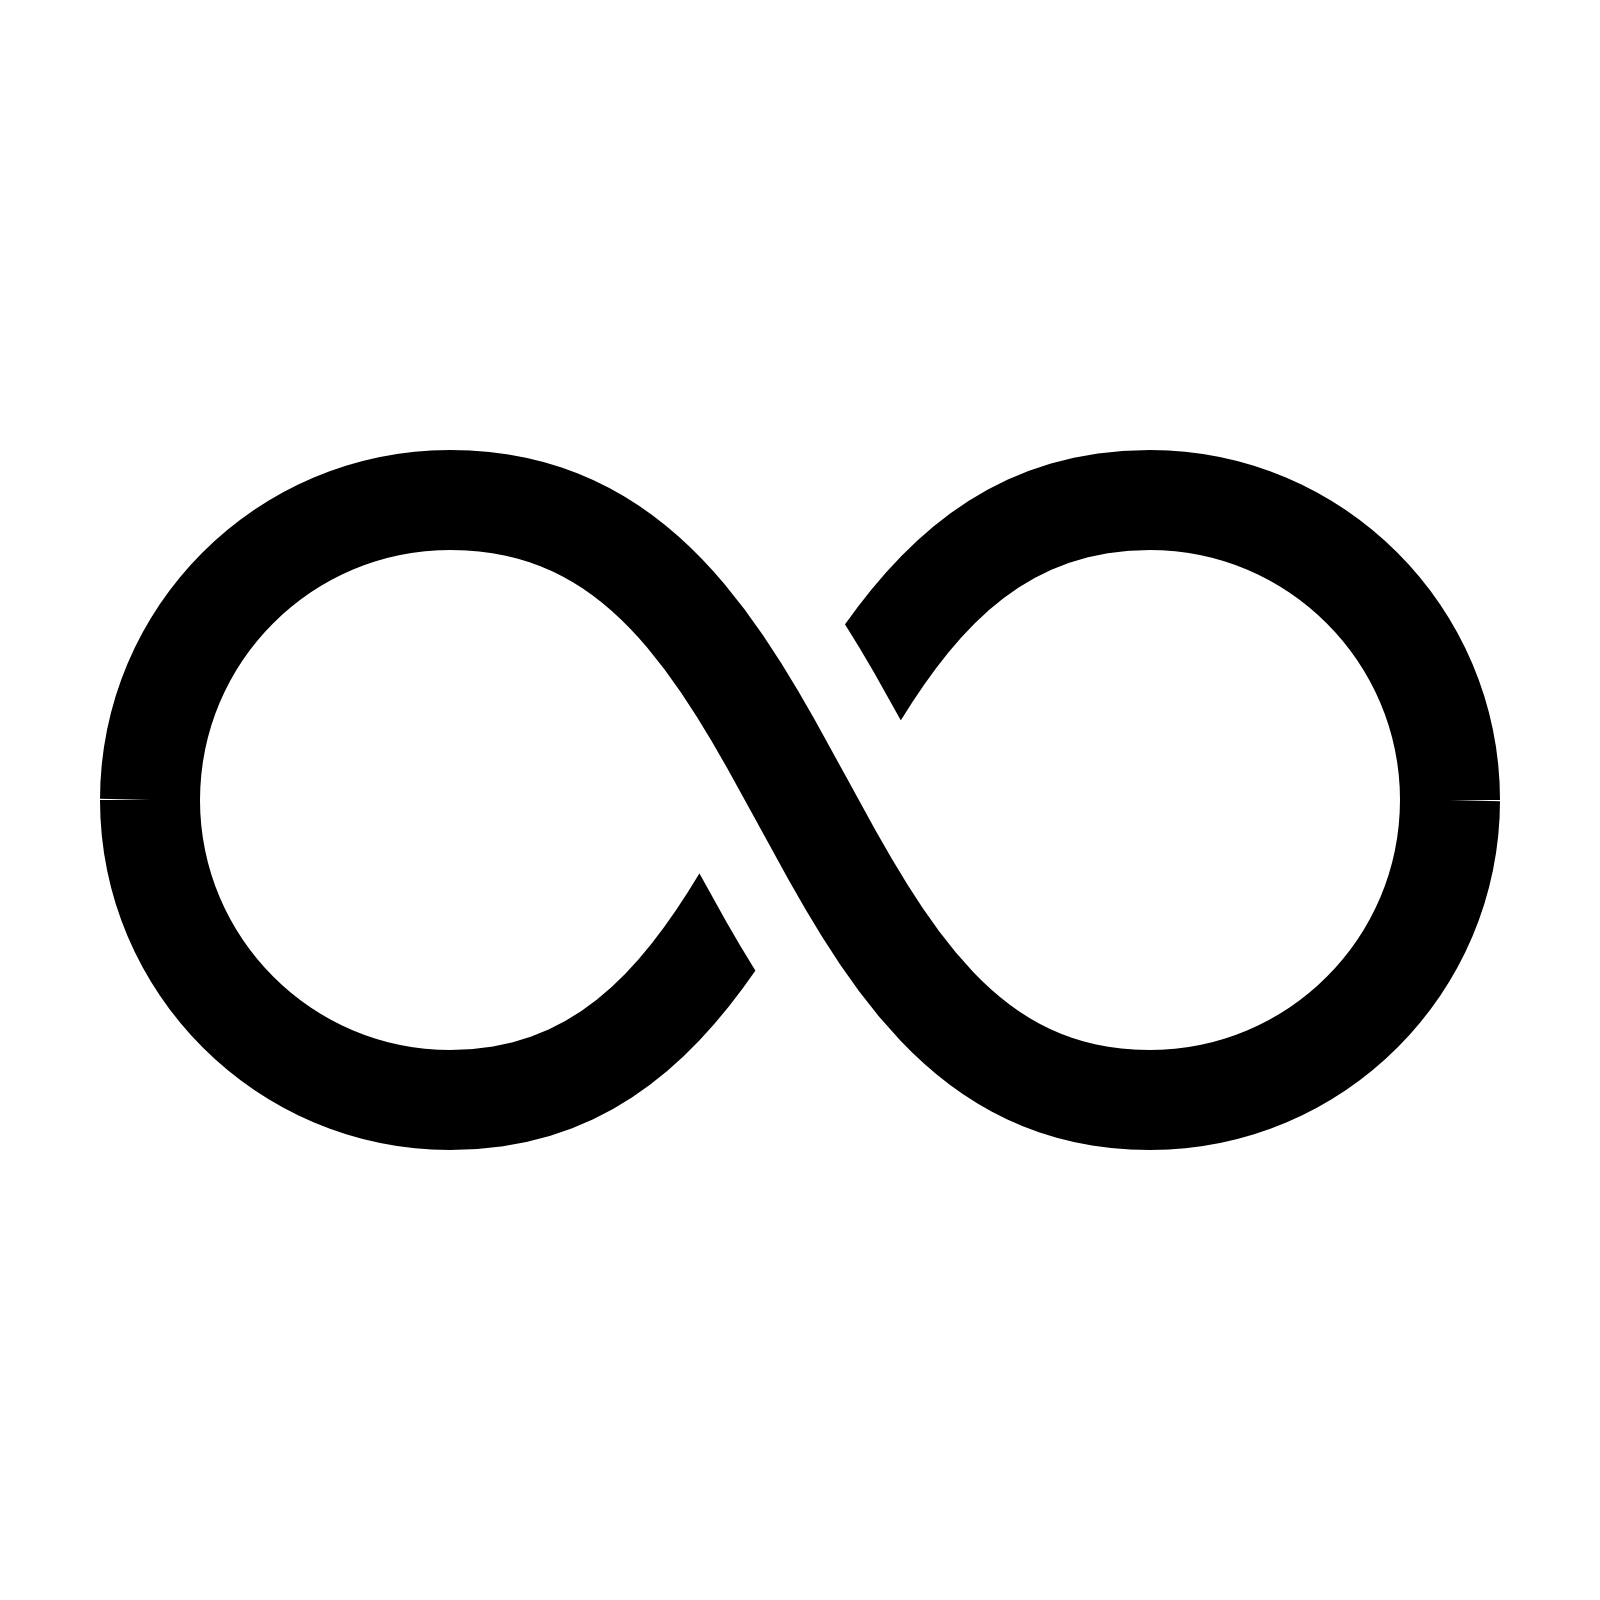 Infinity symbol clipart free download best infinity symbol 1600x1600 infinity clipart infiniti buycottarizona